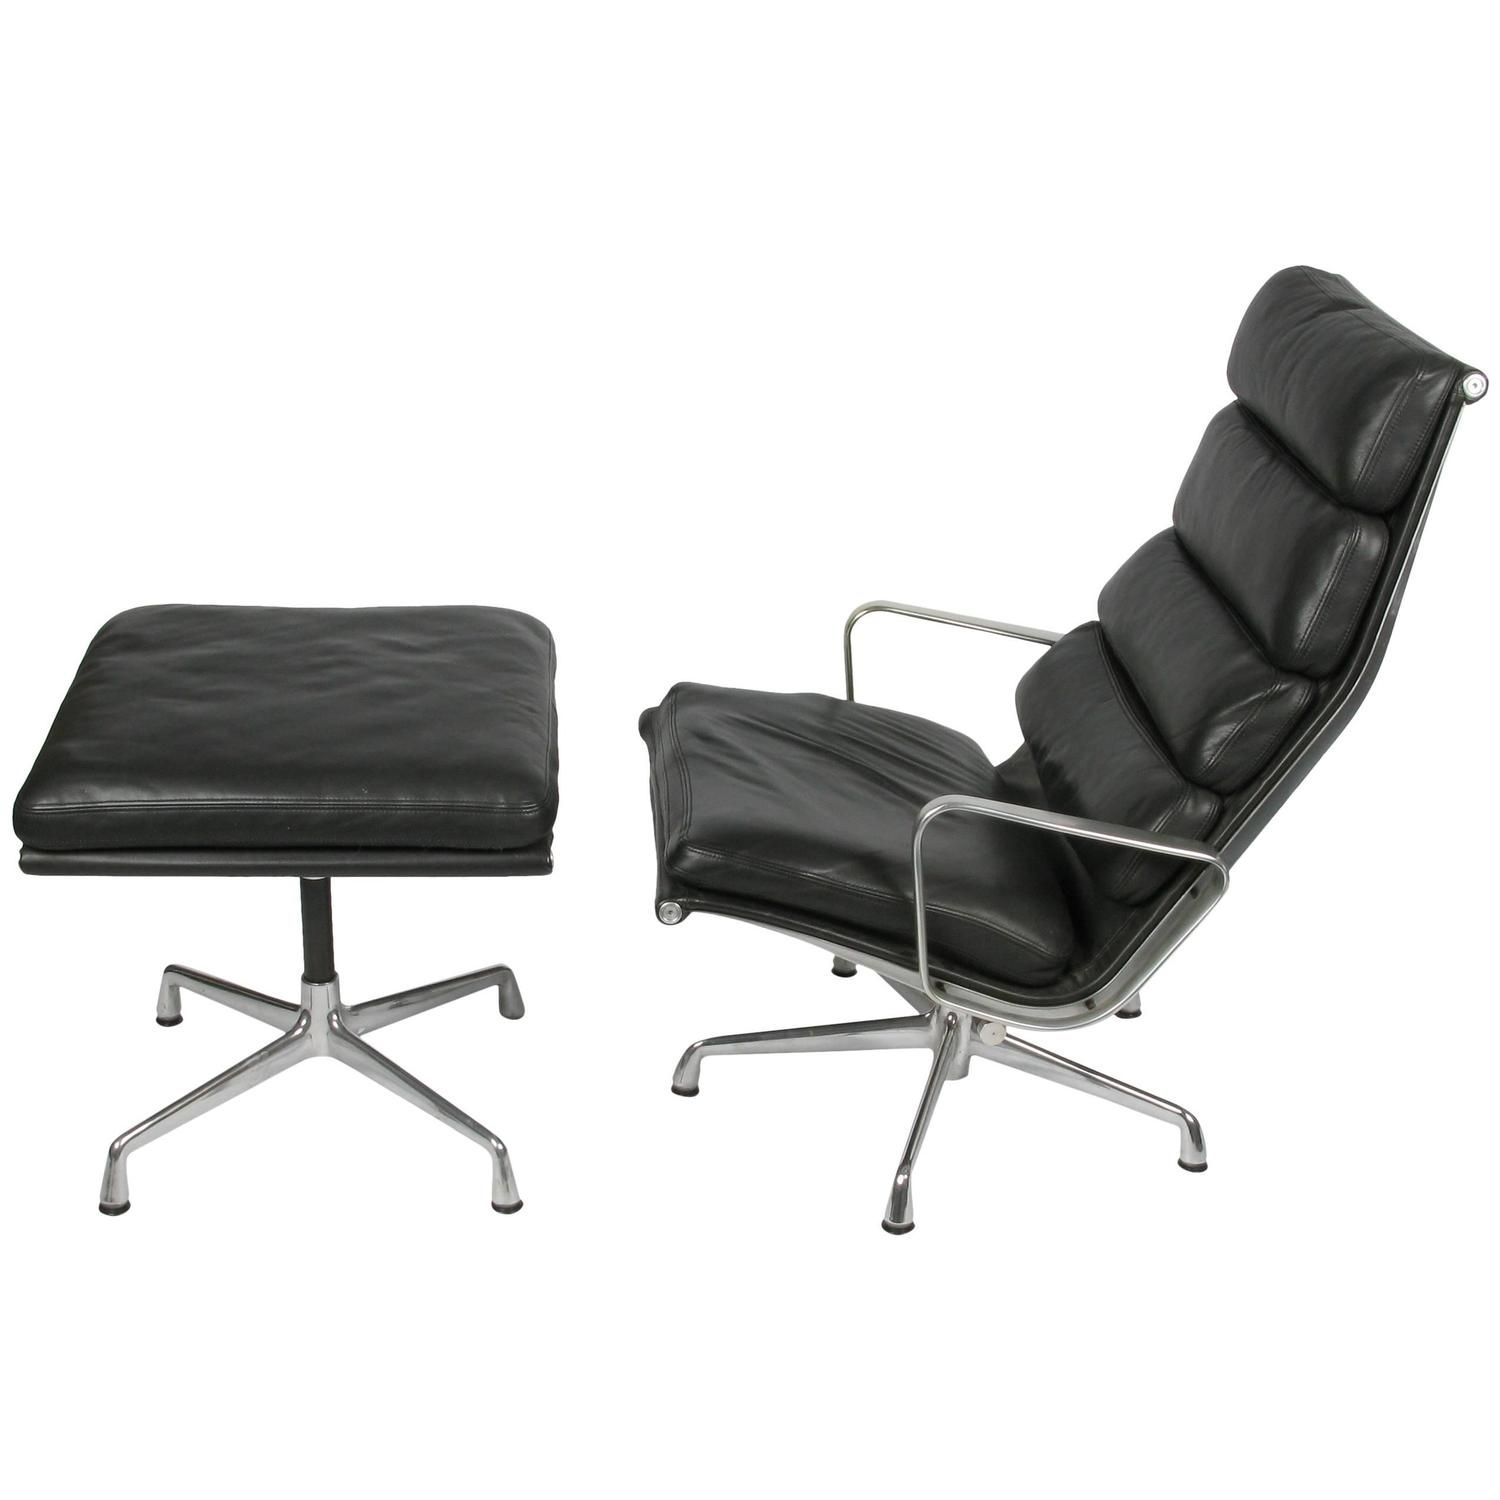 Eames Soft Pad Lounge Chair And Ottoman From A Unique Collection